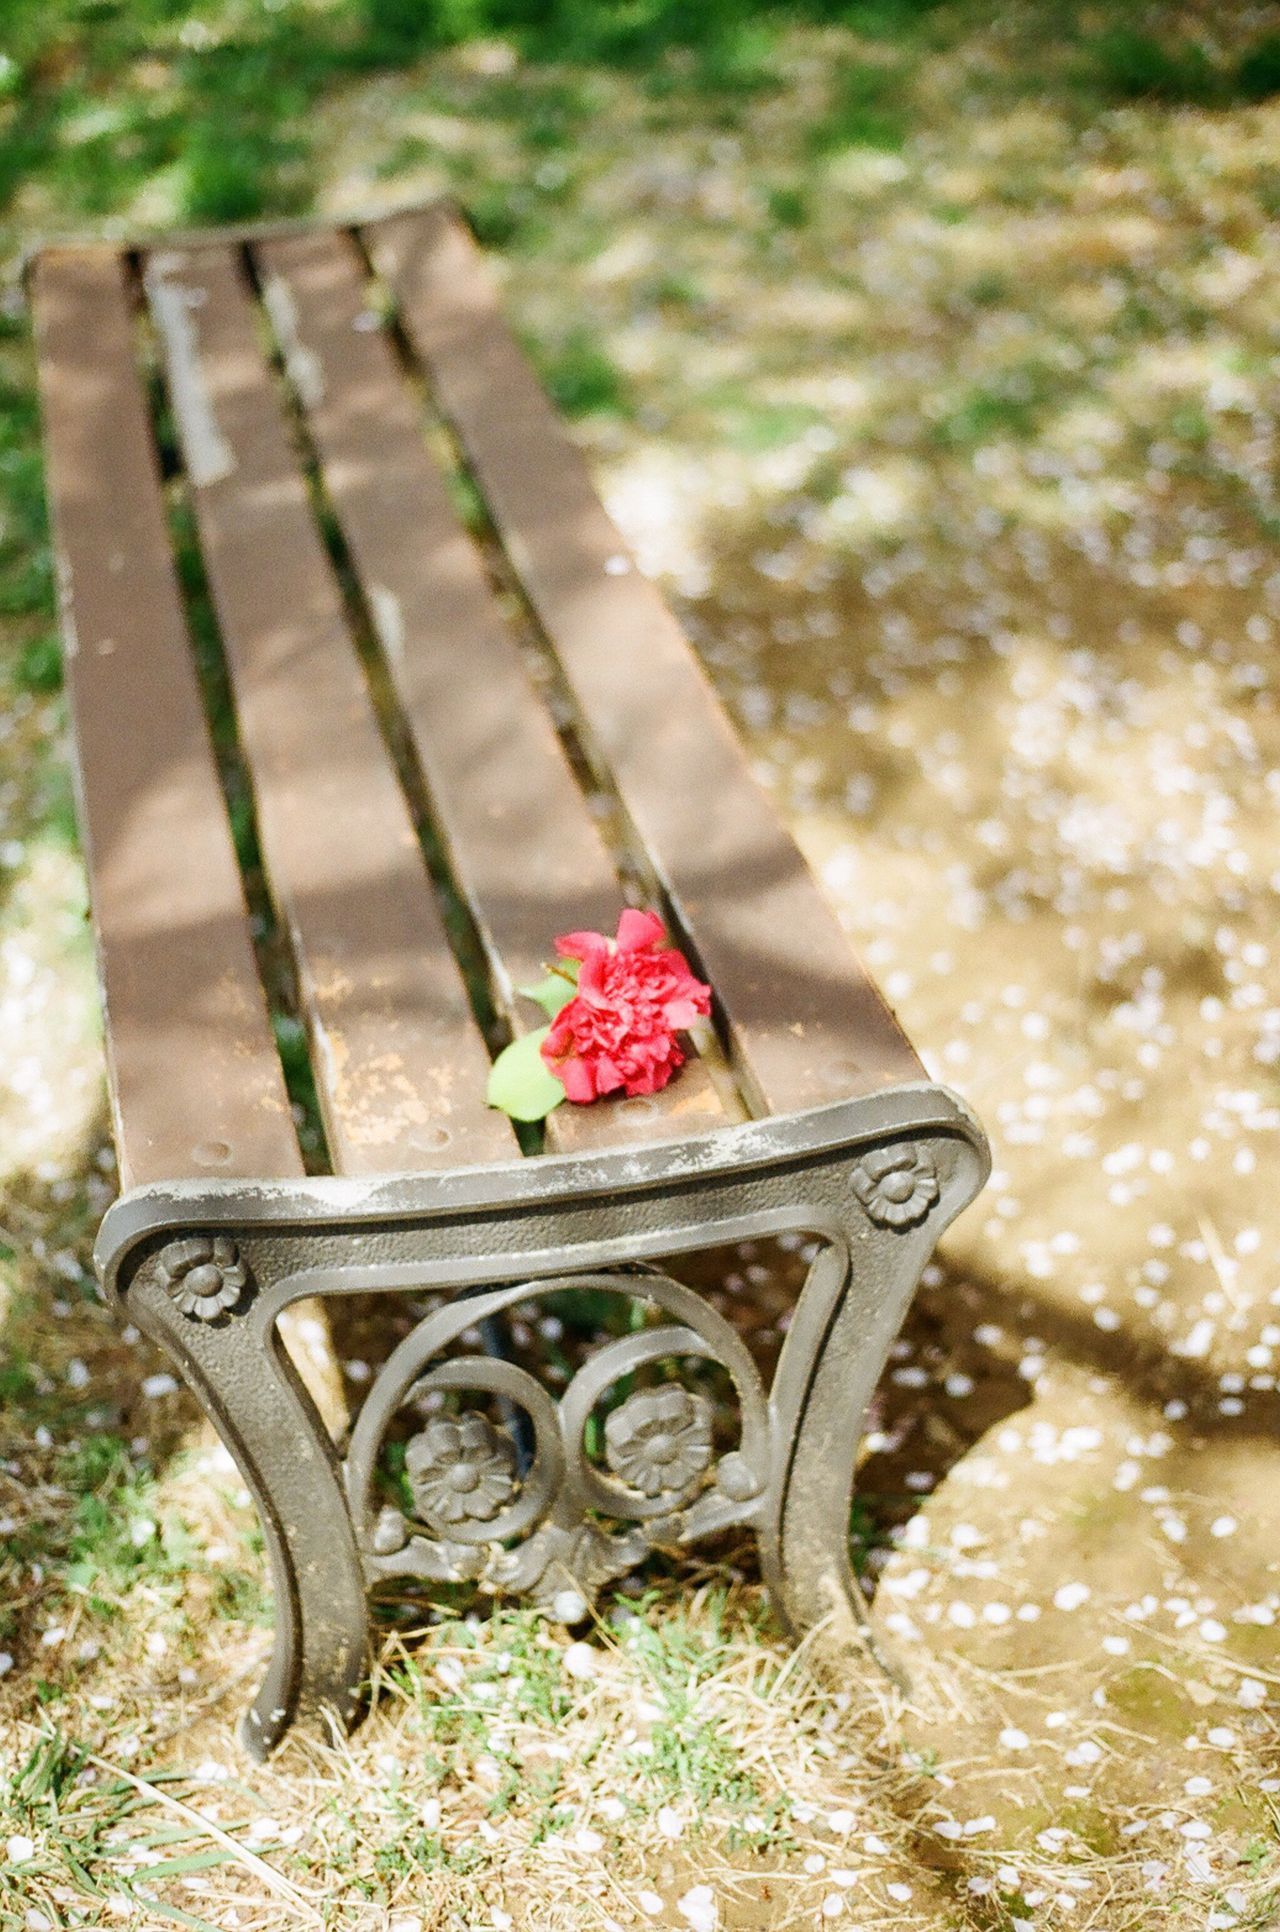 Film Photography Filmisnotdead Analogue Photography Daylight Bench Springtime No People Wood - Material Outdoors Nature Day Red Flower Close-up